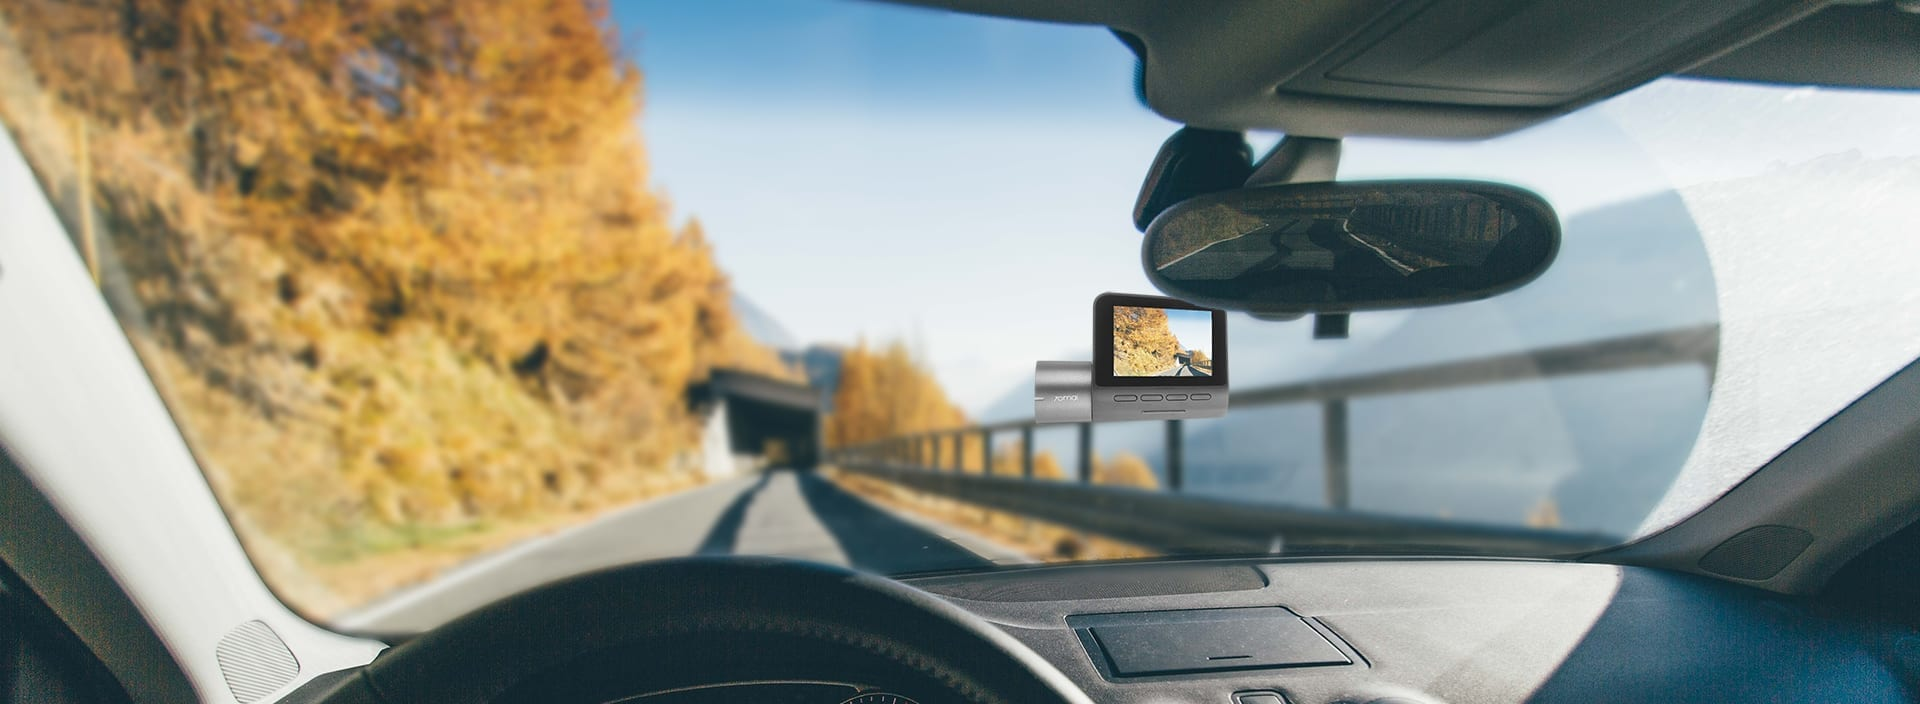 Beste dashcam